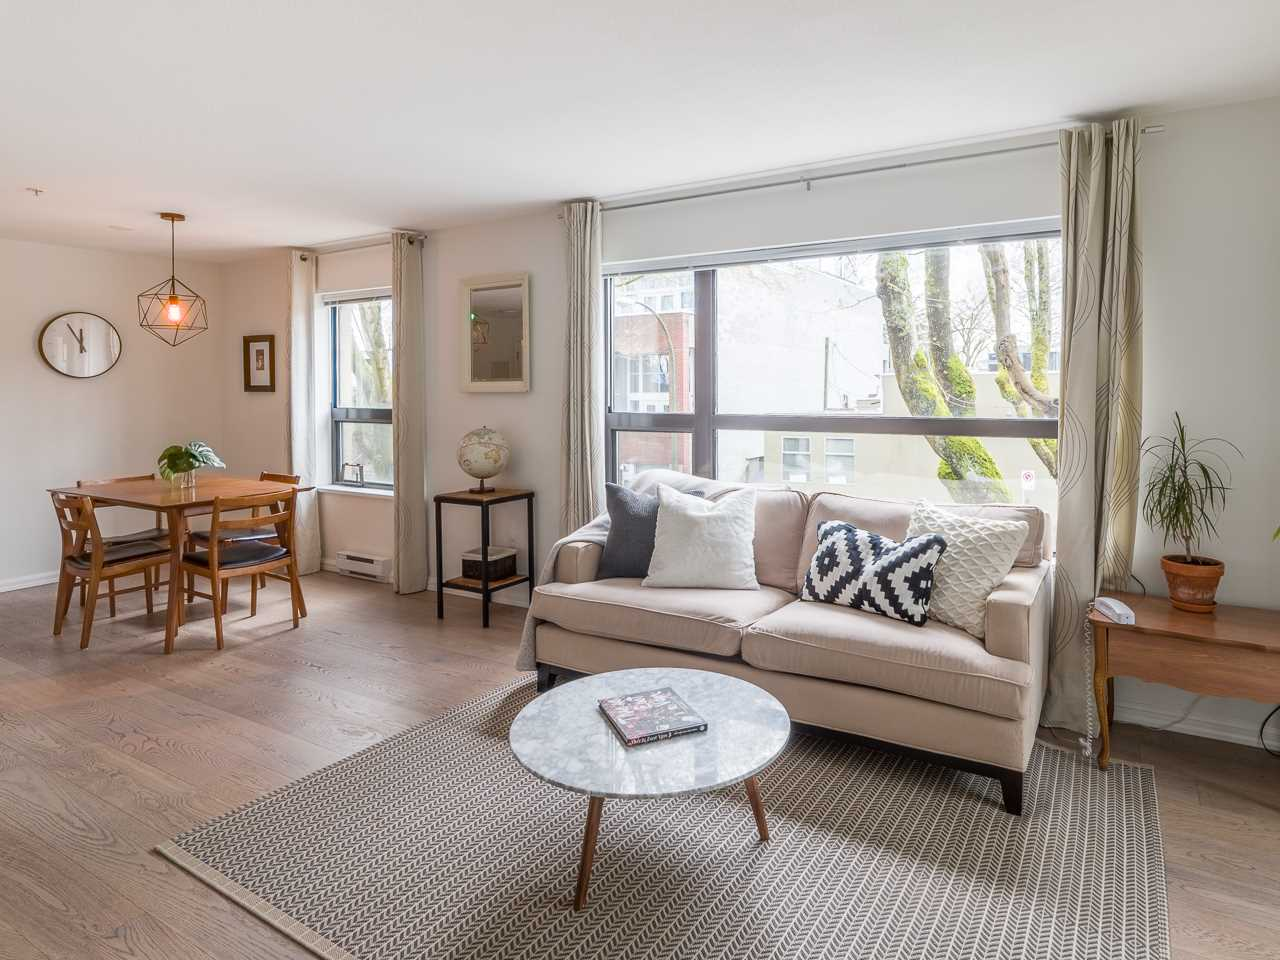 Sold: 312 - 997 West 22nd Avenue, Vancouver, BC